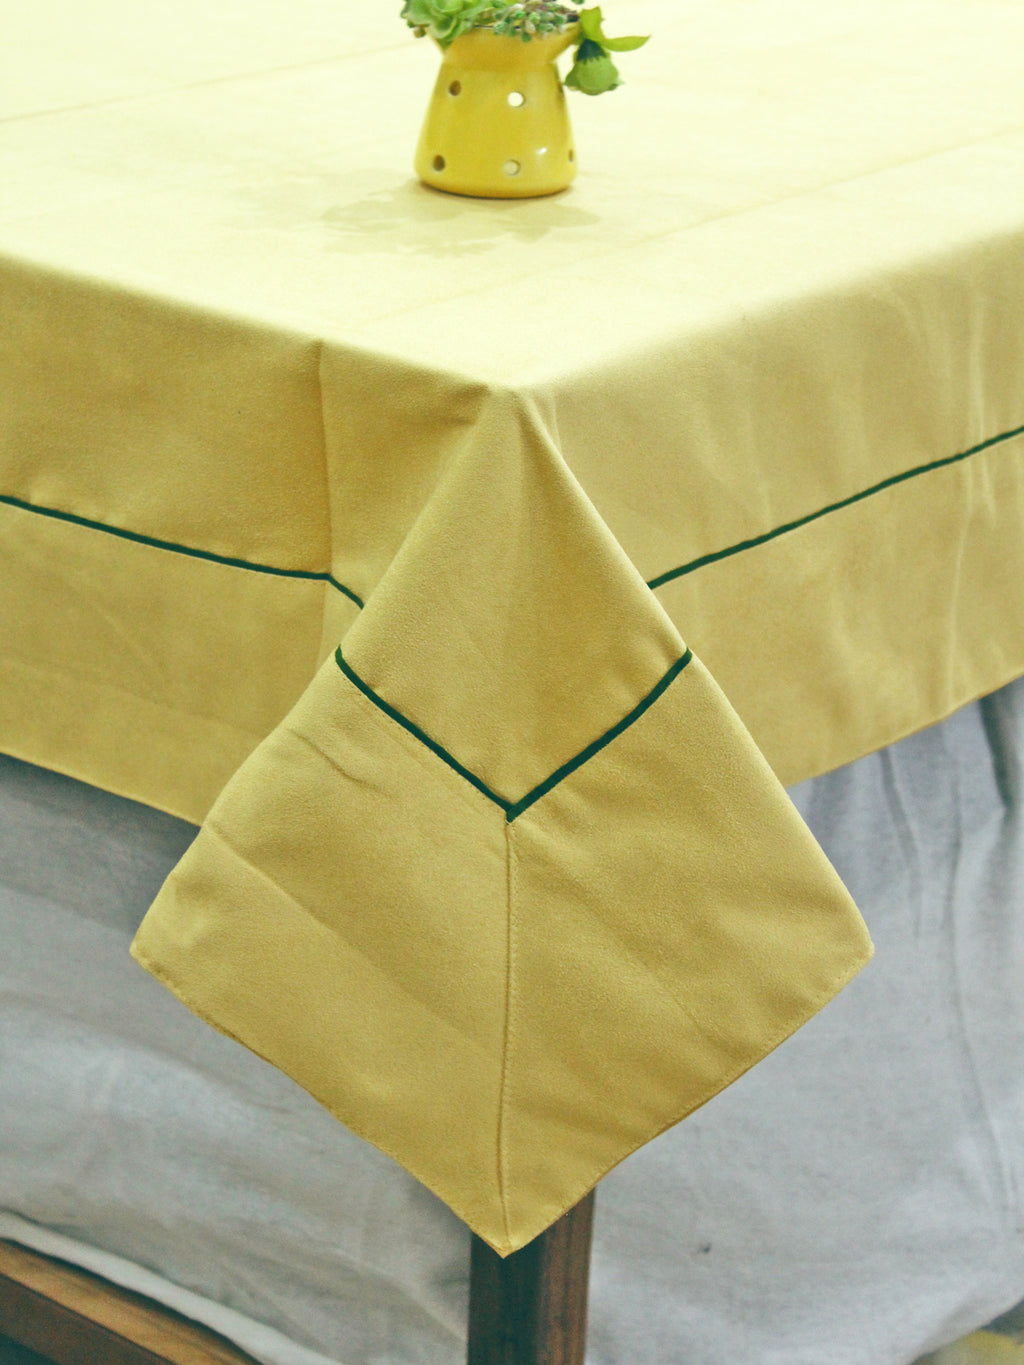 AURAVE Suede Microfibre Solid Plain Polyester Table Cloth - LEMON YELLOW